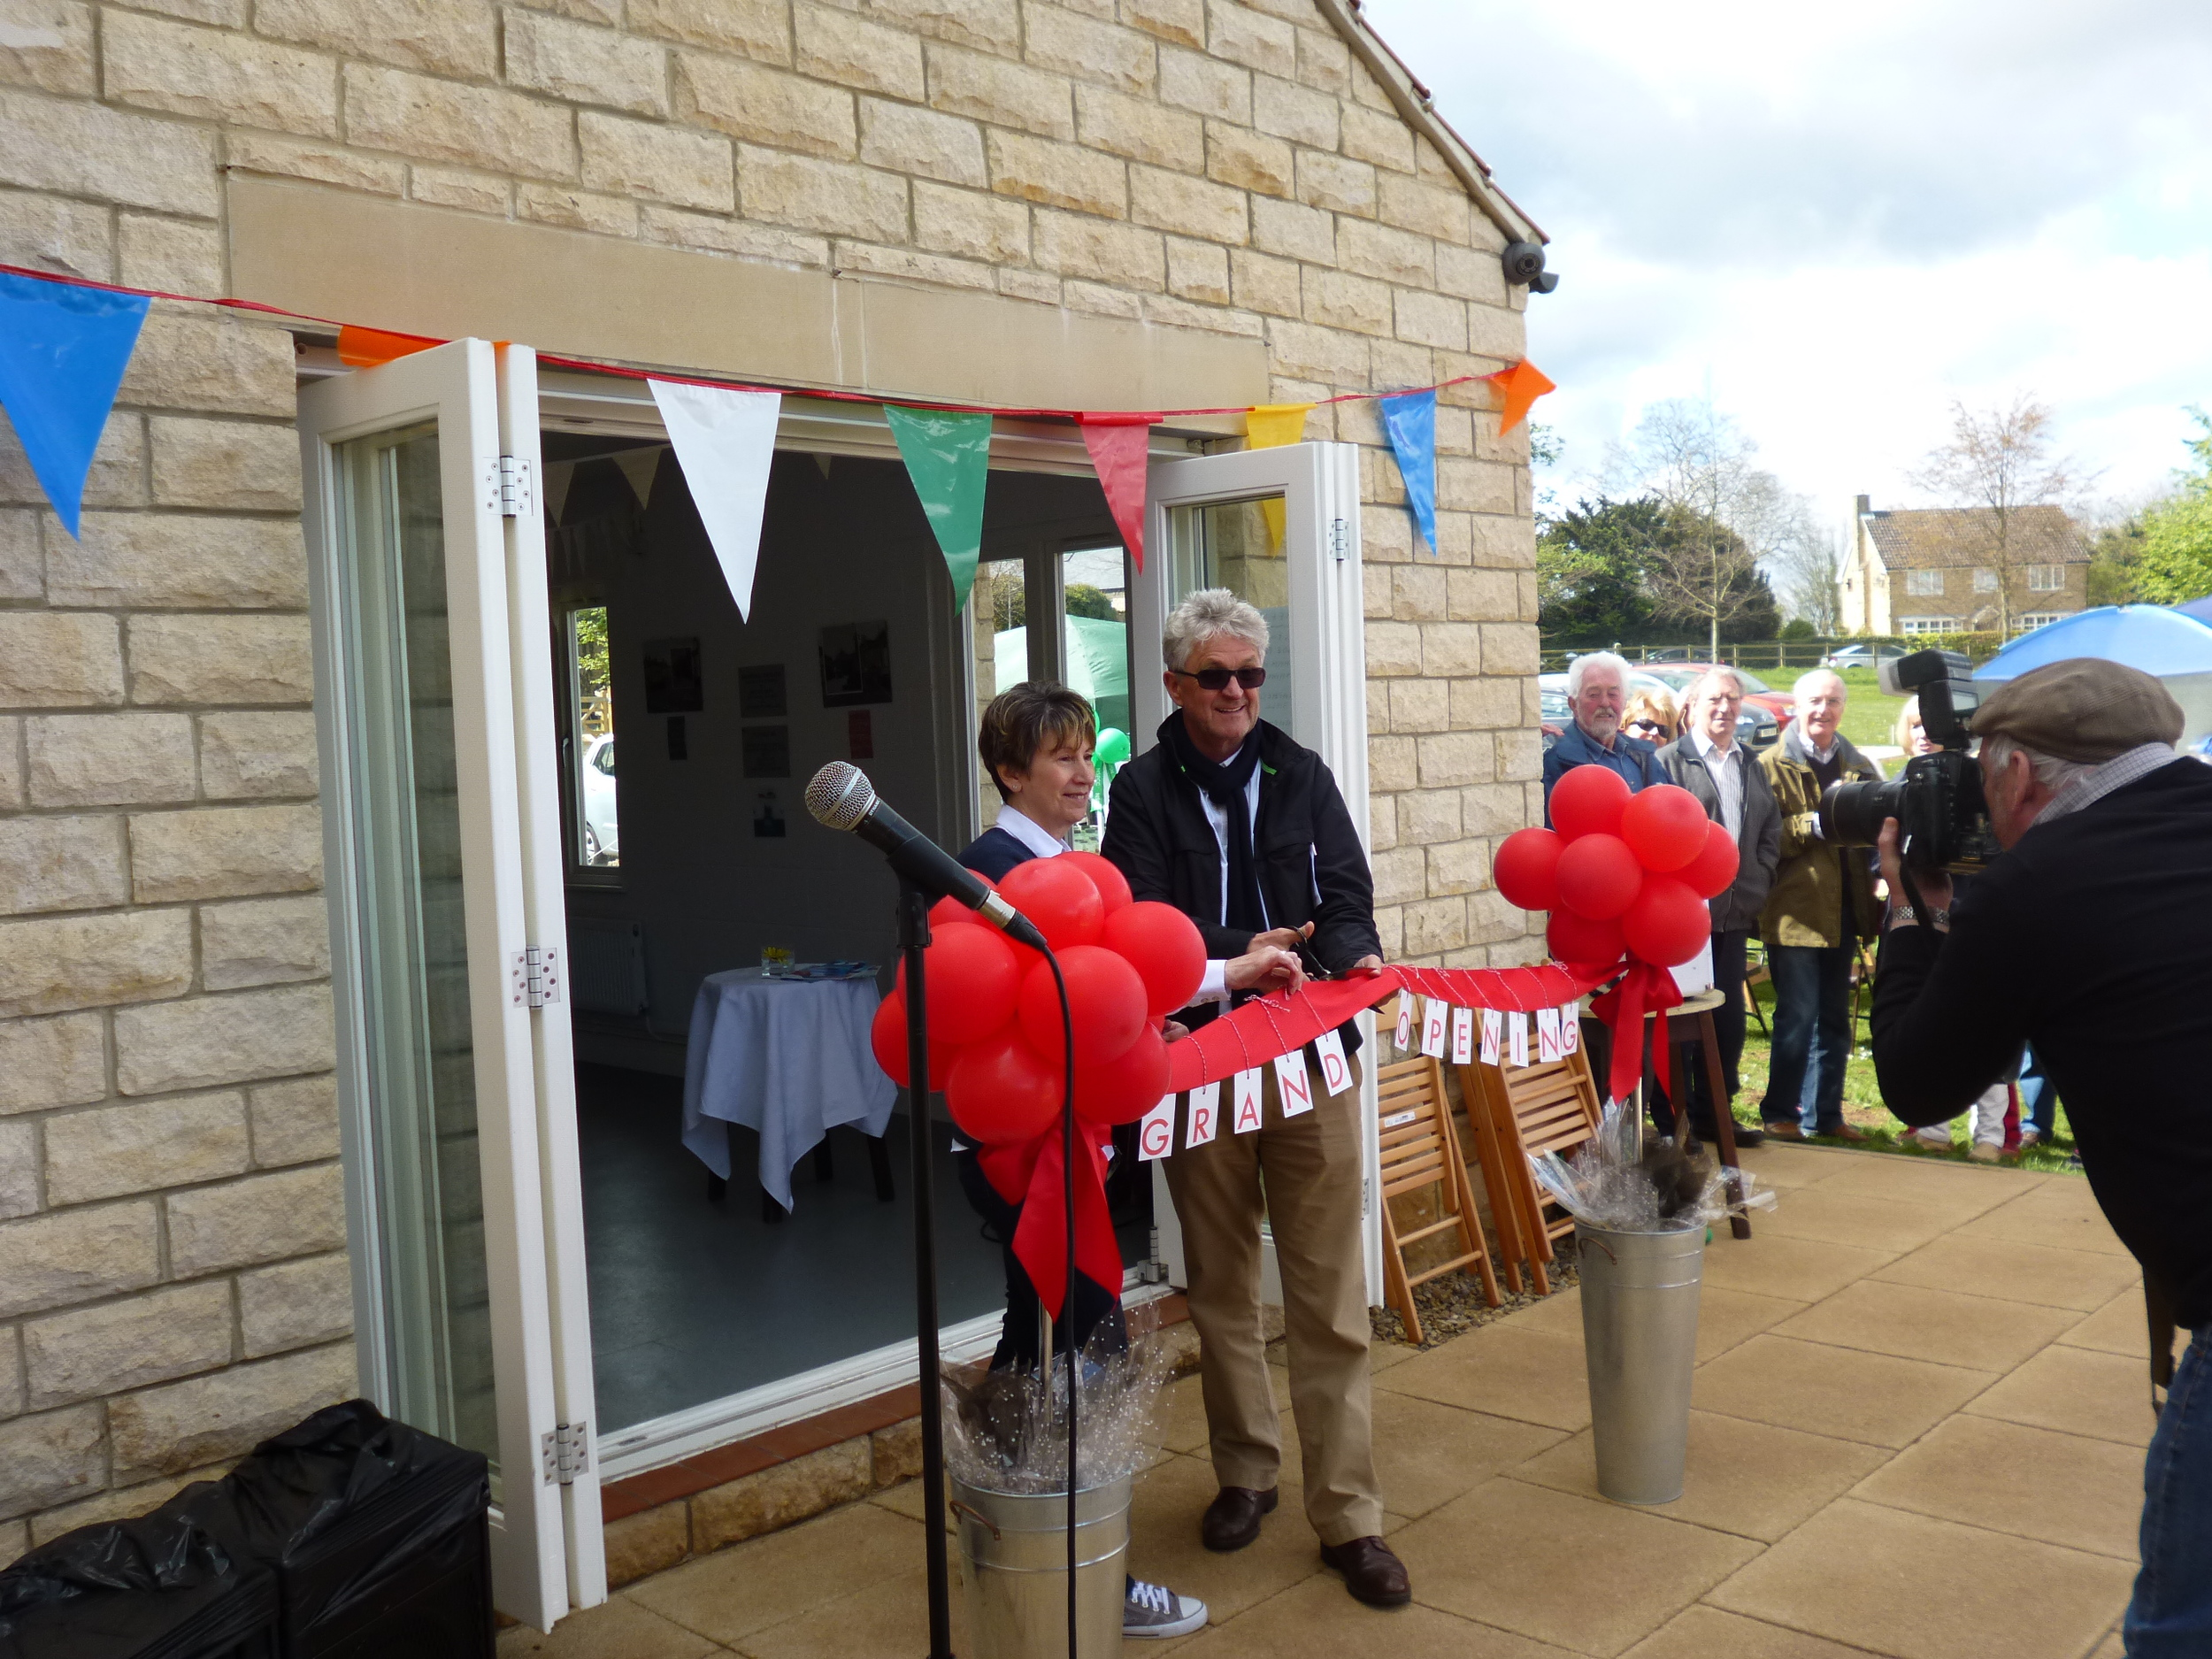 Melvin Benn marking the official opening of the Pavilion in April 2015